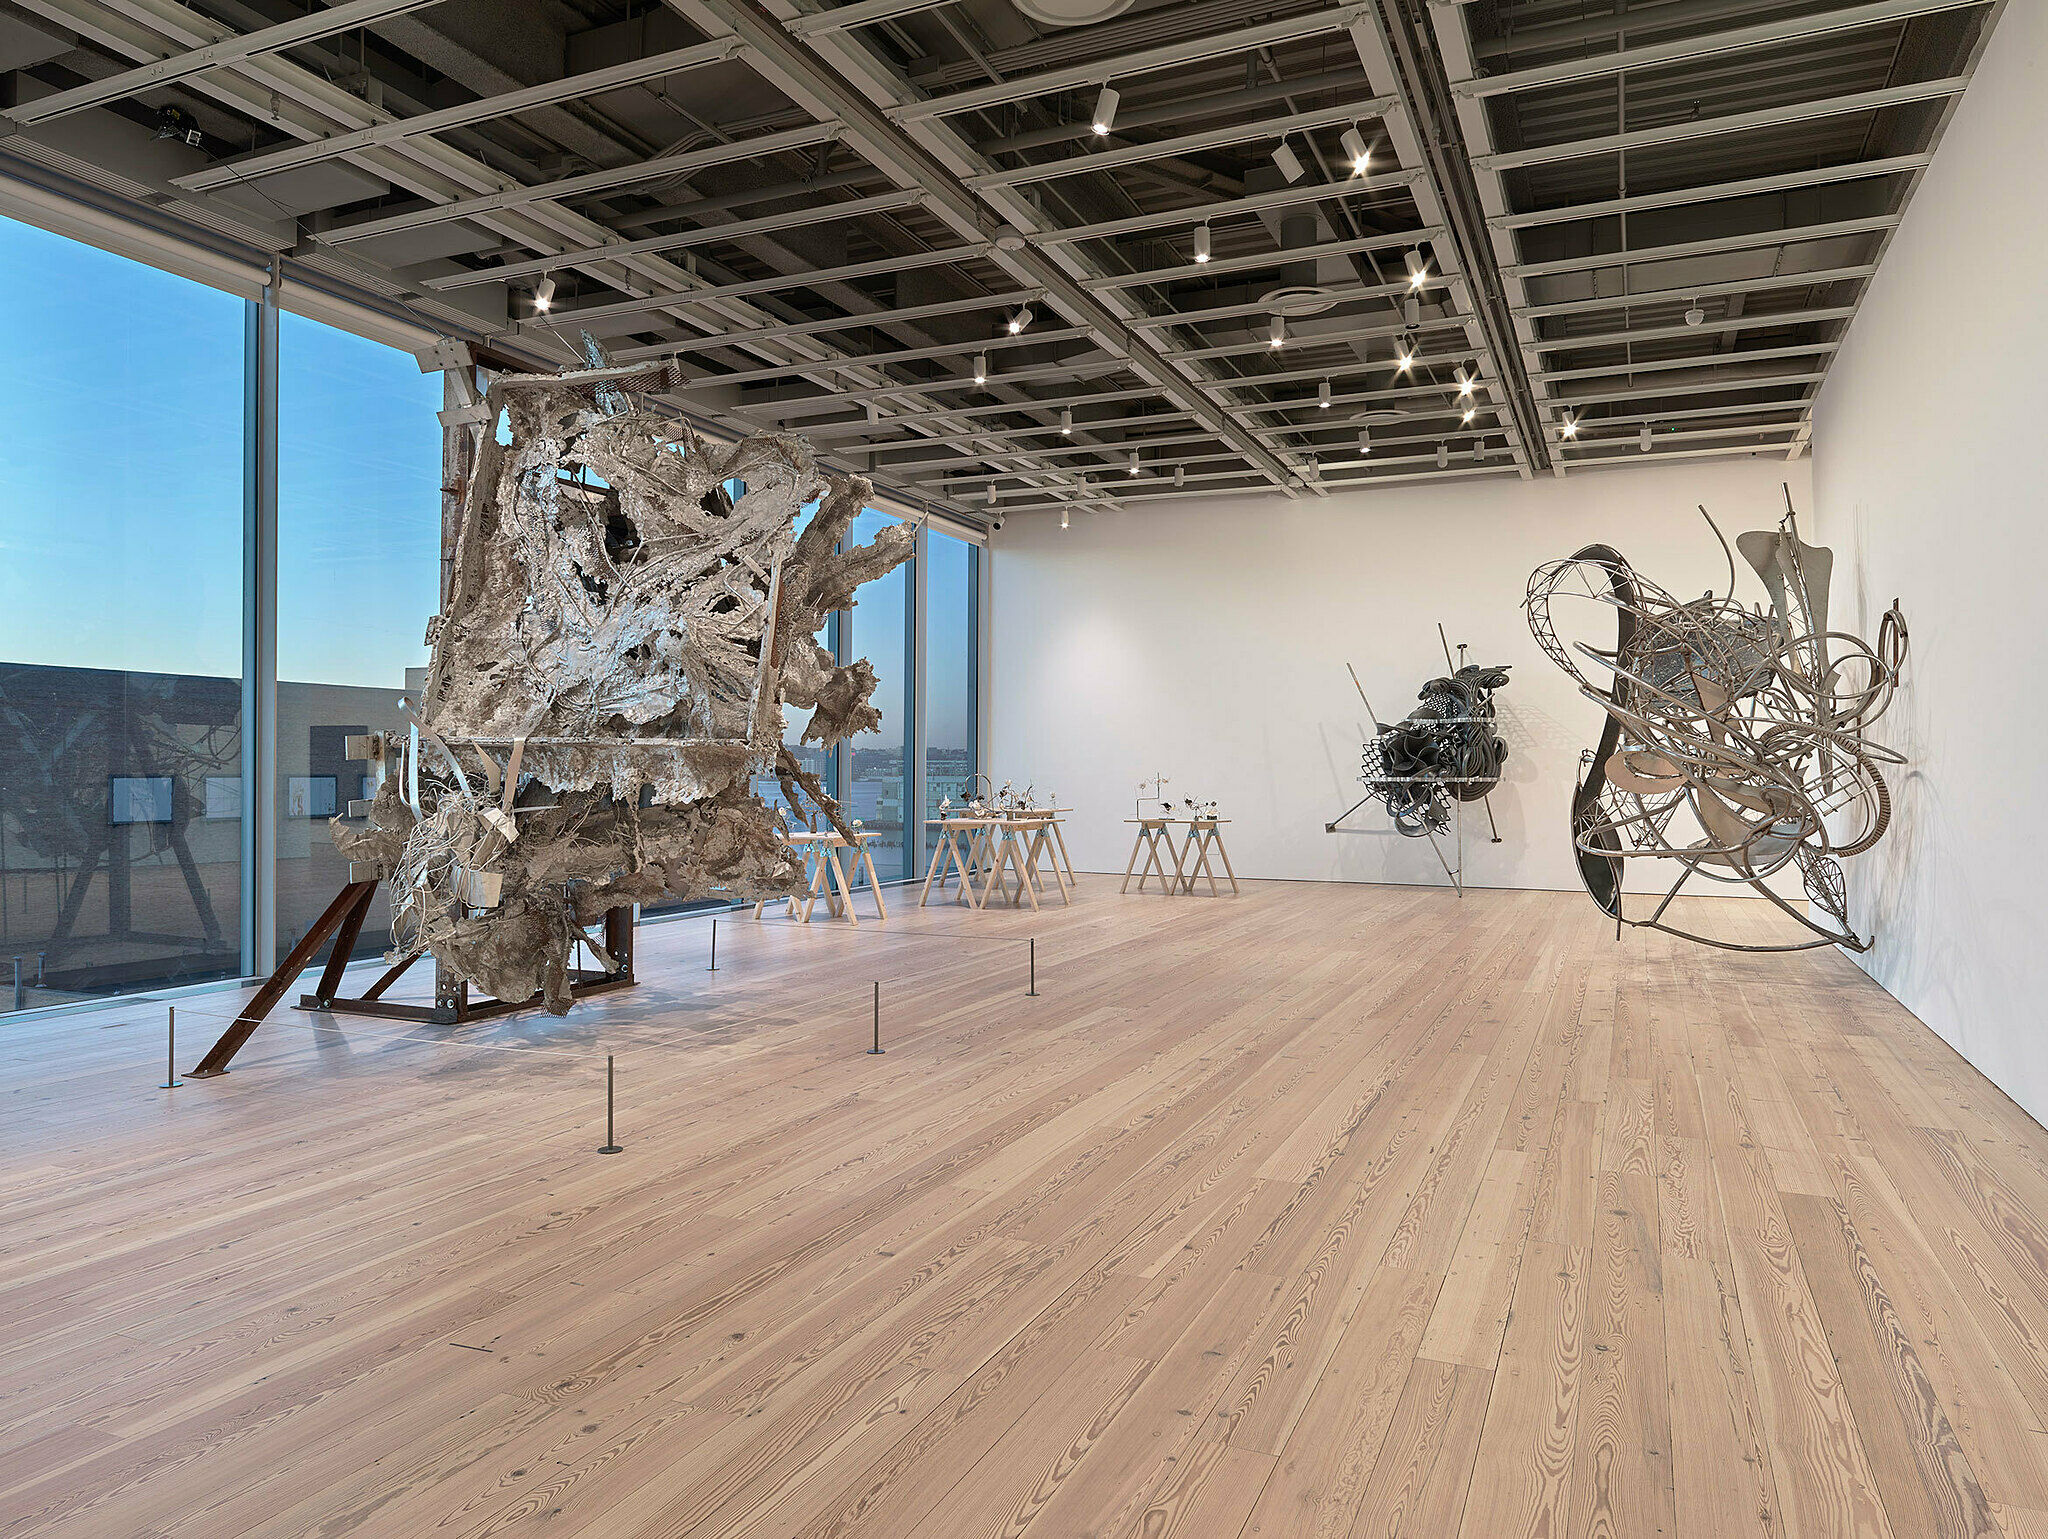 Metal sculptures line the gallery space.